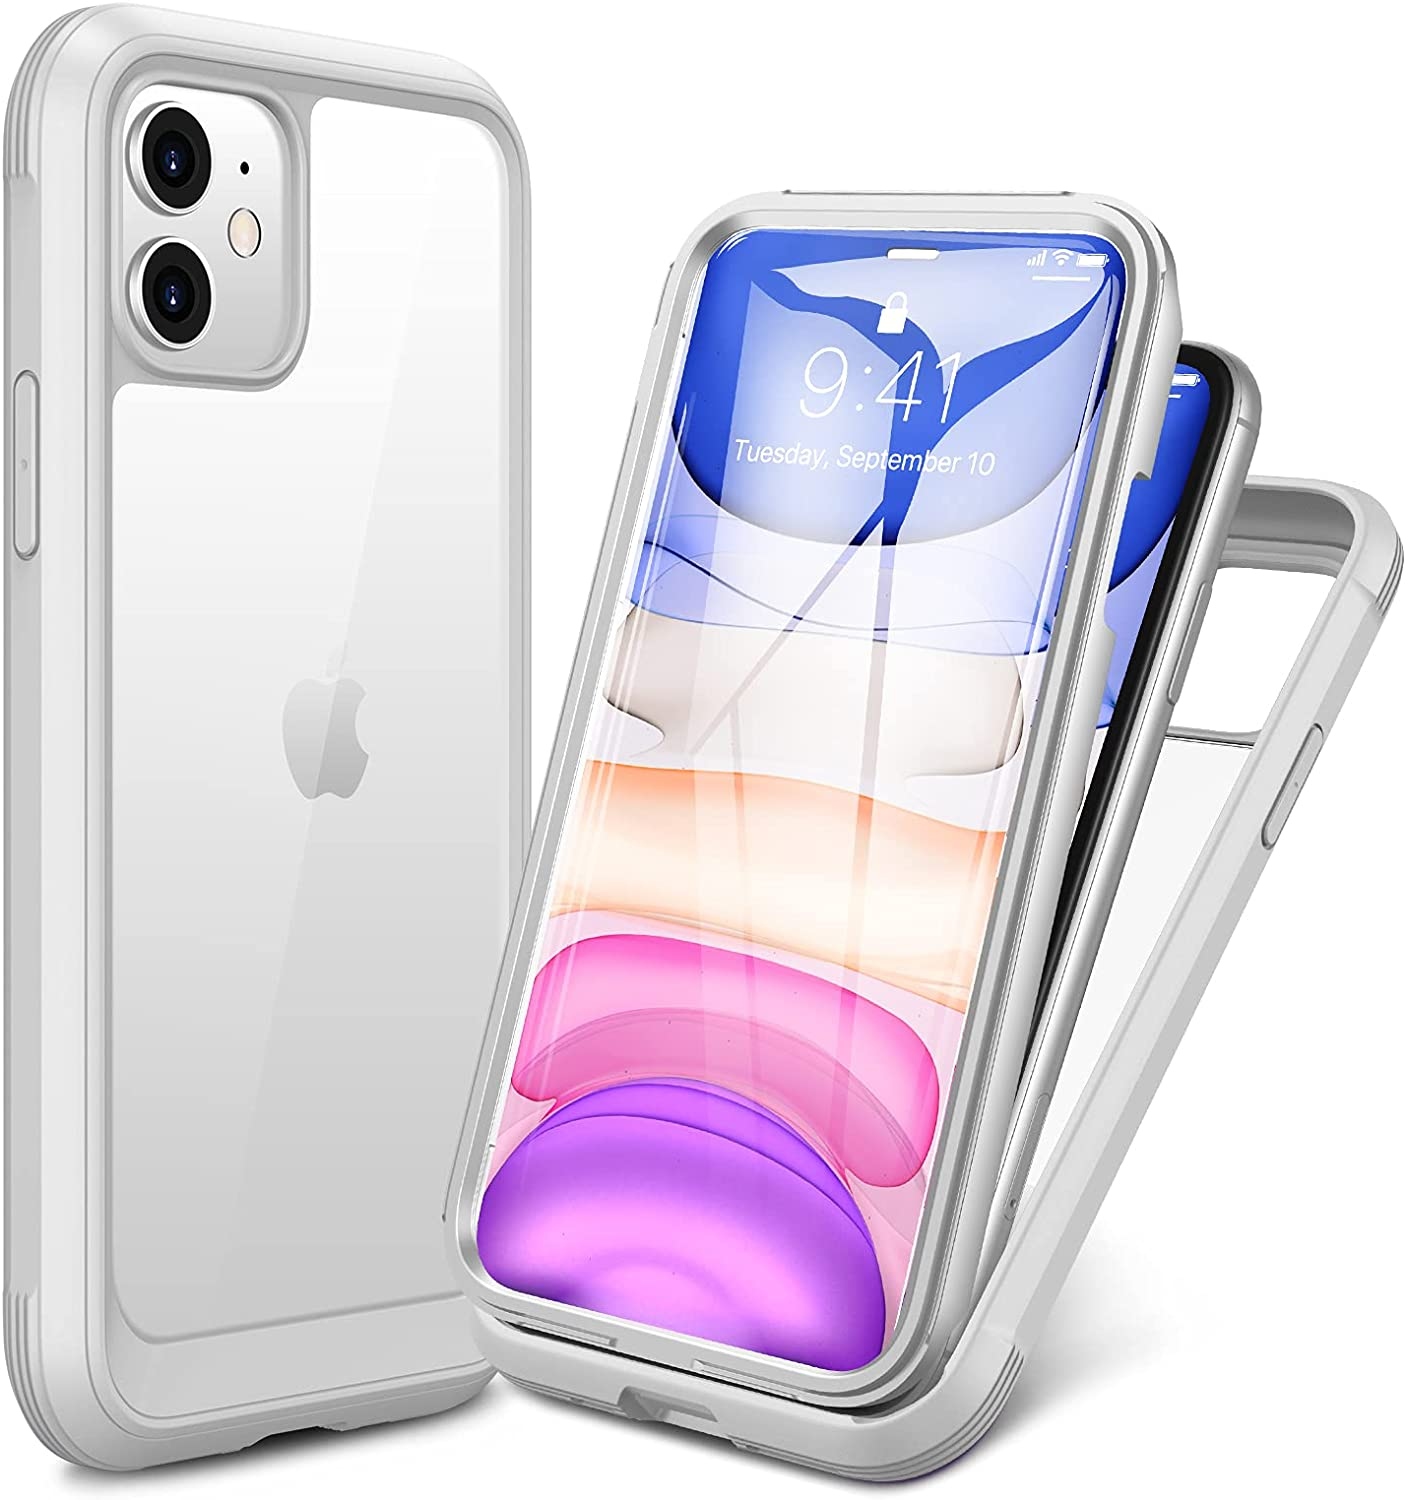 Miracase Glass+ Case for iPhone 11 6.1 inch, 2021 Upgrade Full-Body Clear Bumper Case with Built-in 9H Tempered Glass Screen Protector for iPhone 11, White